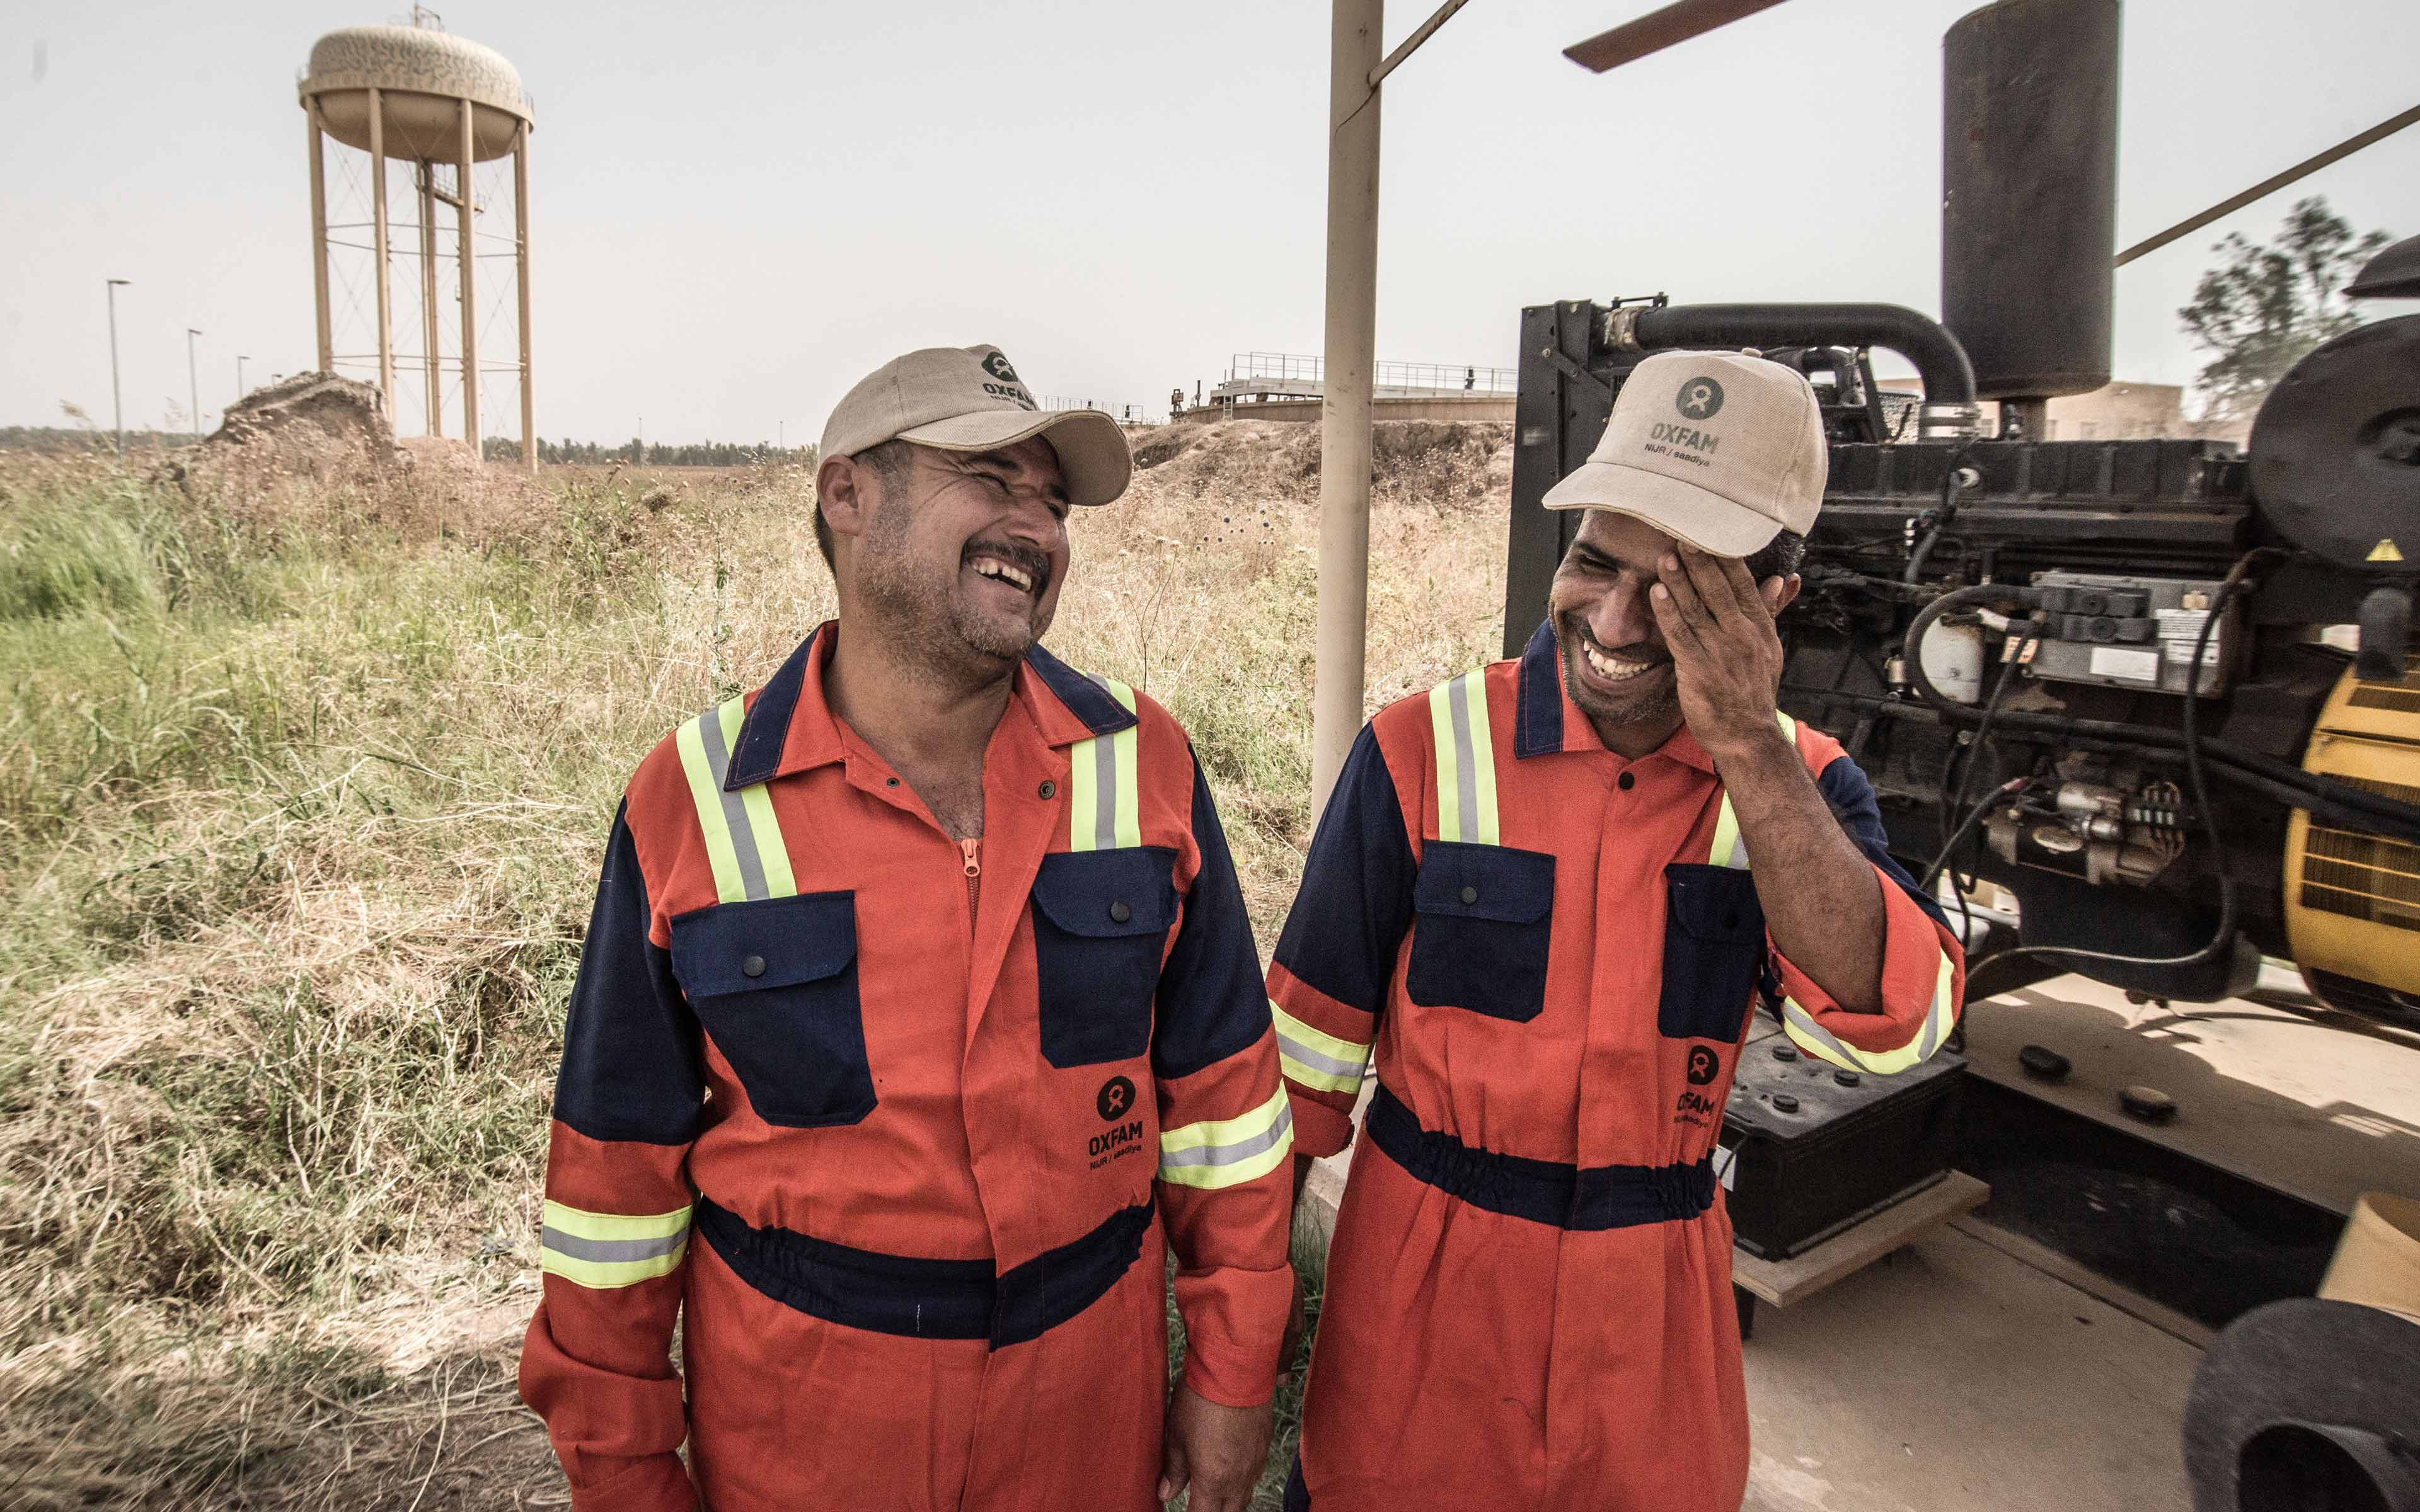 Two staffers from the local water plant in the Iraqi community of Saadiya share a laugh. They were among the first to return after the town as reclaimed following an ISIS occupation.